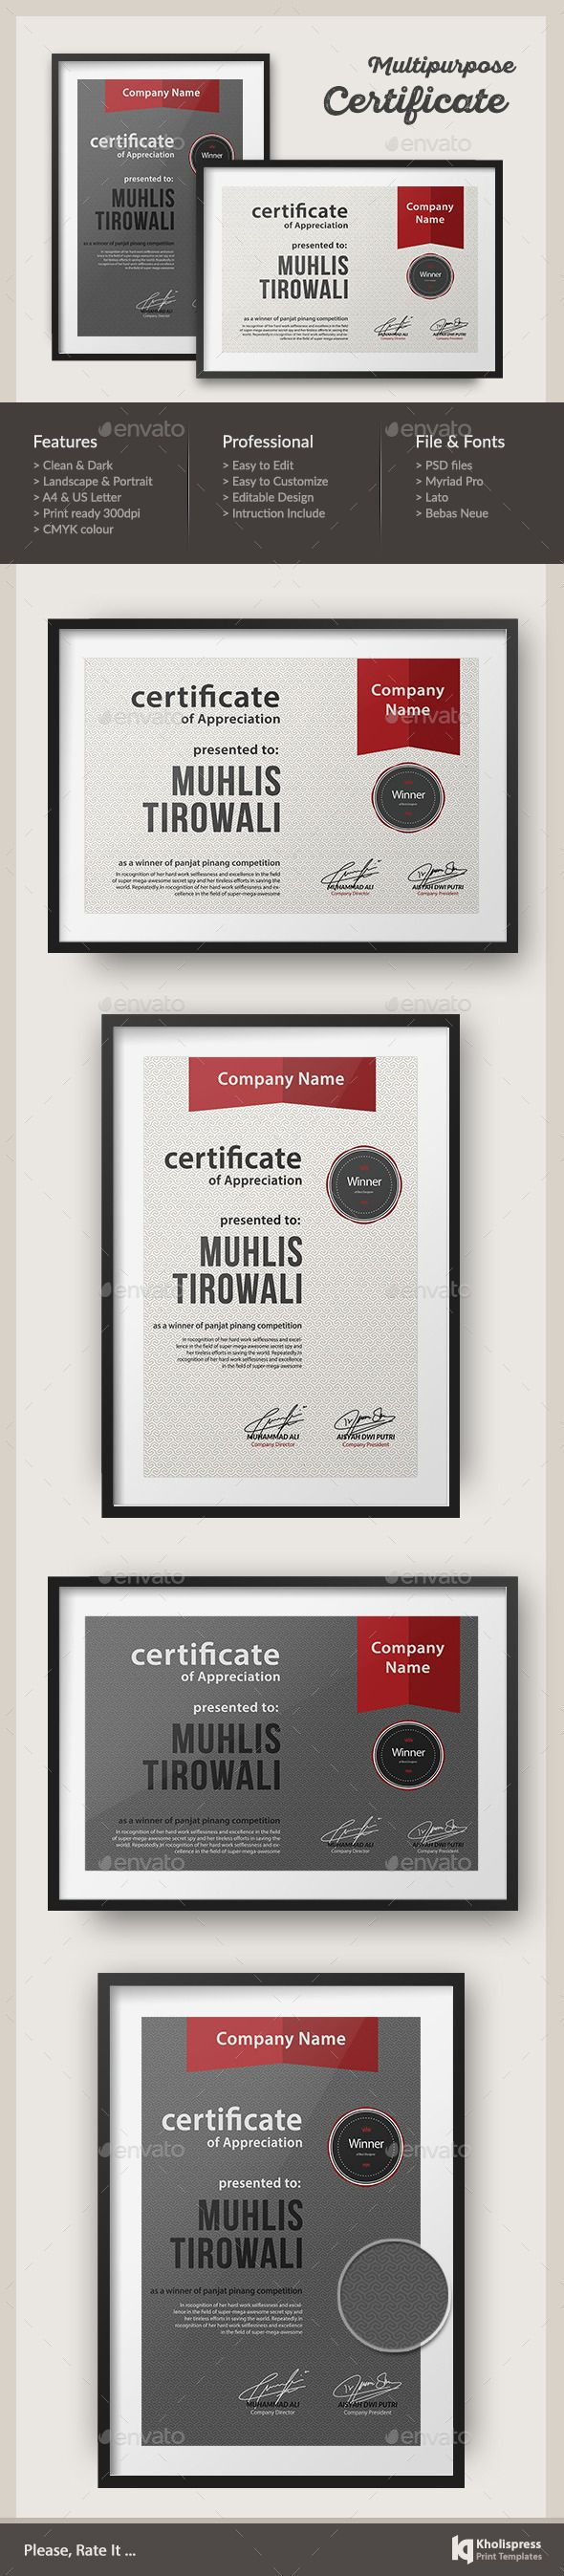 Pattern Certificate Template PSD. Download here: http://graphicriver.net/item/pattern-certificate/12292394?ref=ksioks